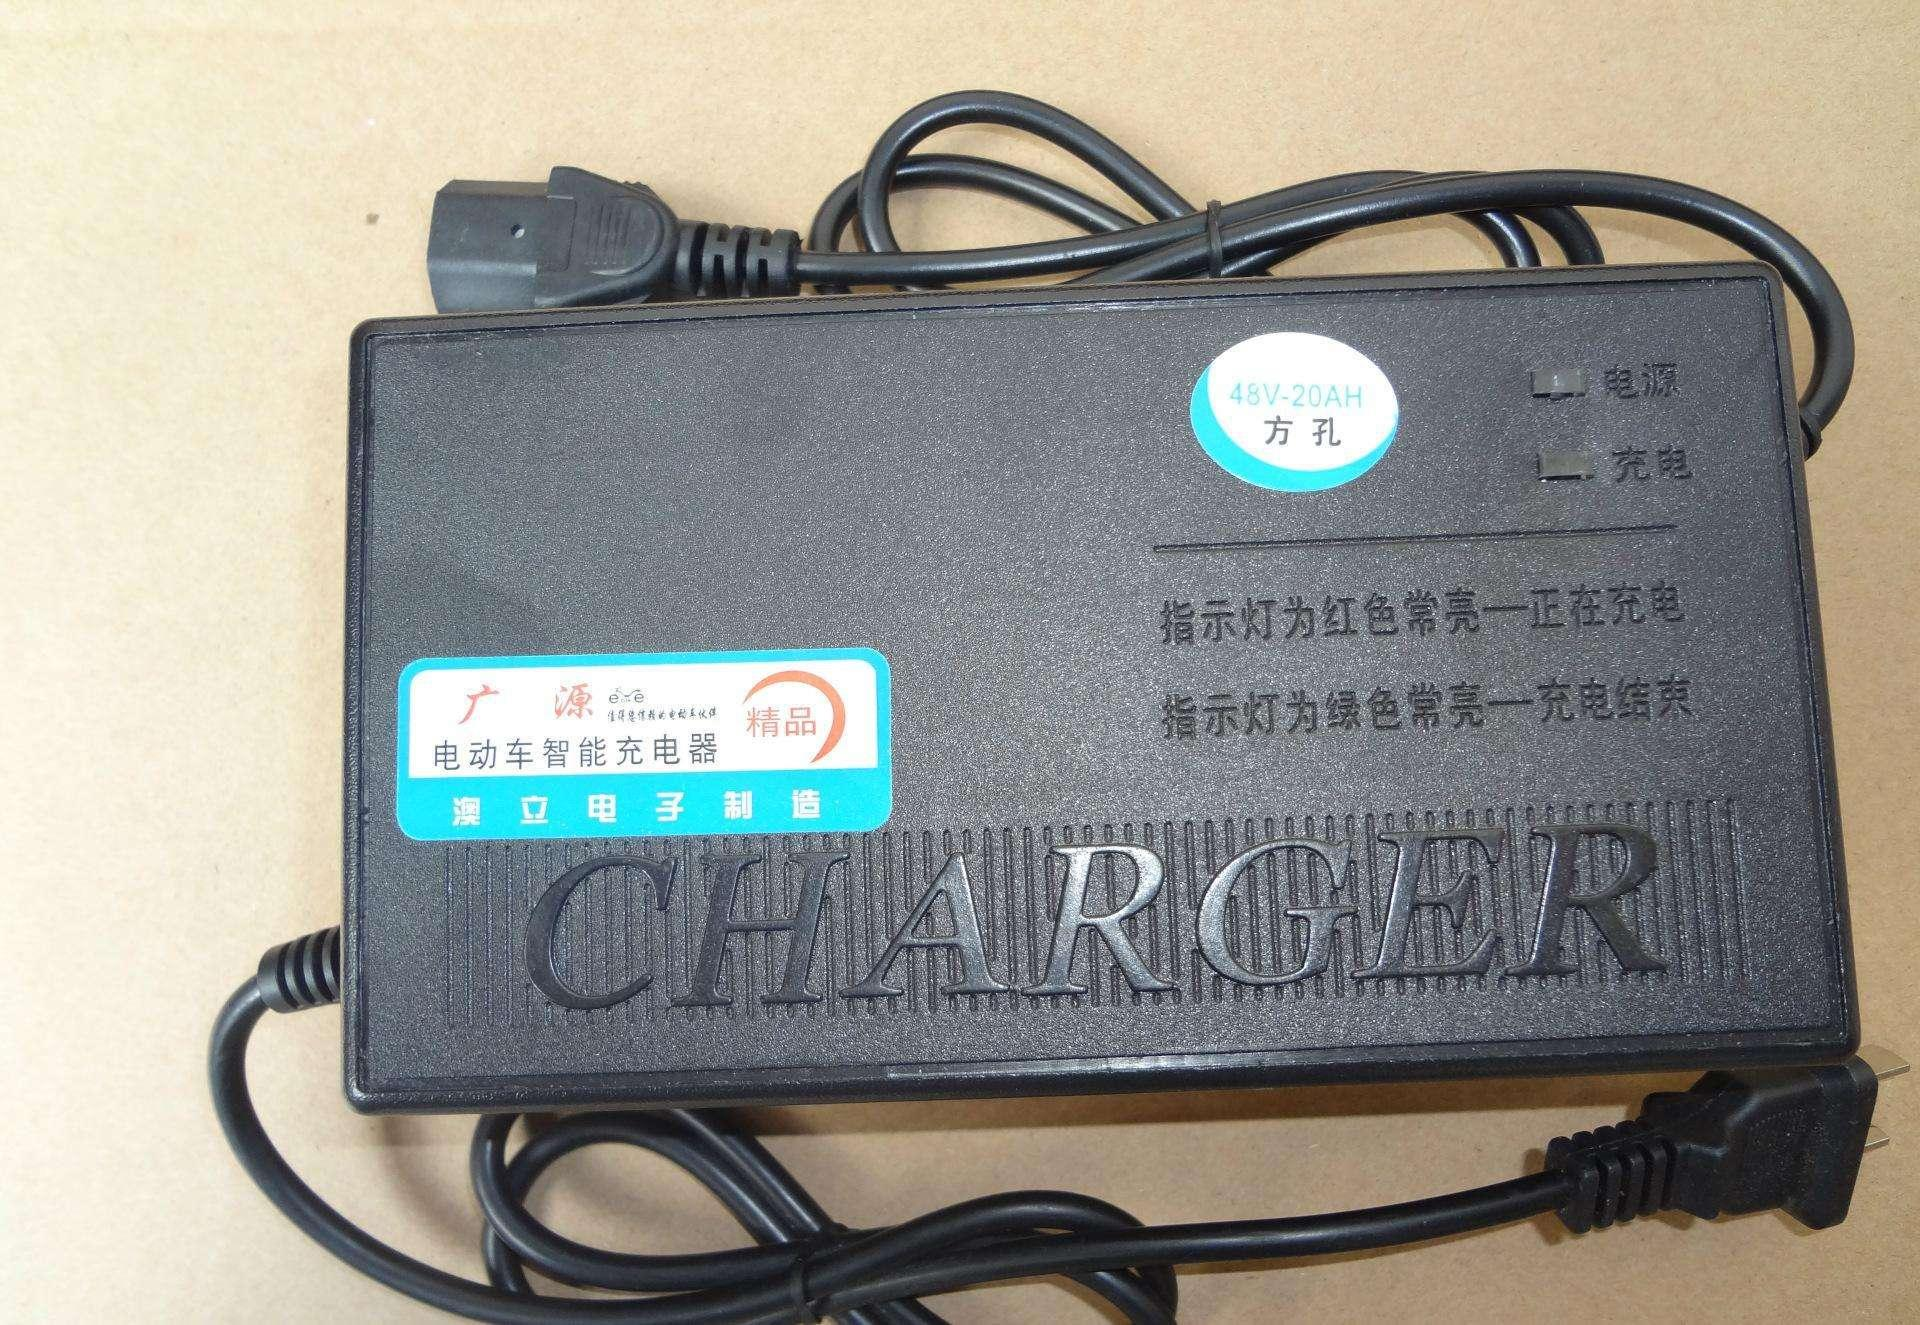 48V20ah Lead Acid Battery Charger Used for Electric Bicycle Motorbicycle 3